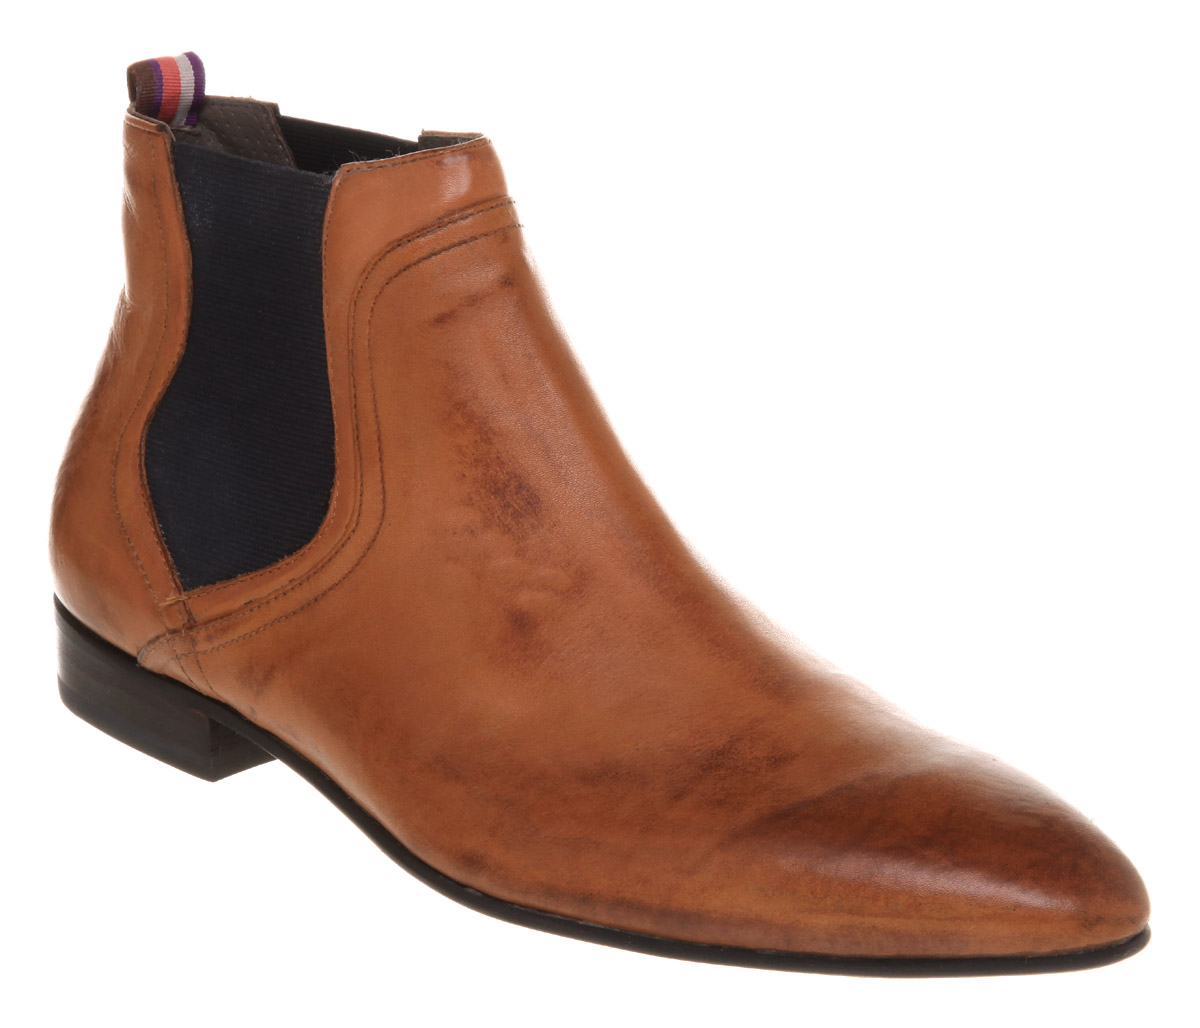 Men's Chelsea Boots In Tan Leather $ 57 From ASOS Price last checked 5 hours ago Product prices and availability are accurate as of the date/time indicated and are subject to truemfilesb5q.gq: $